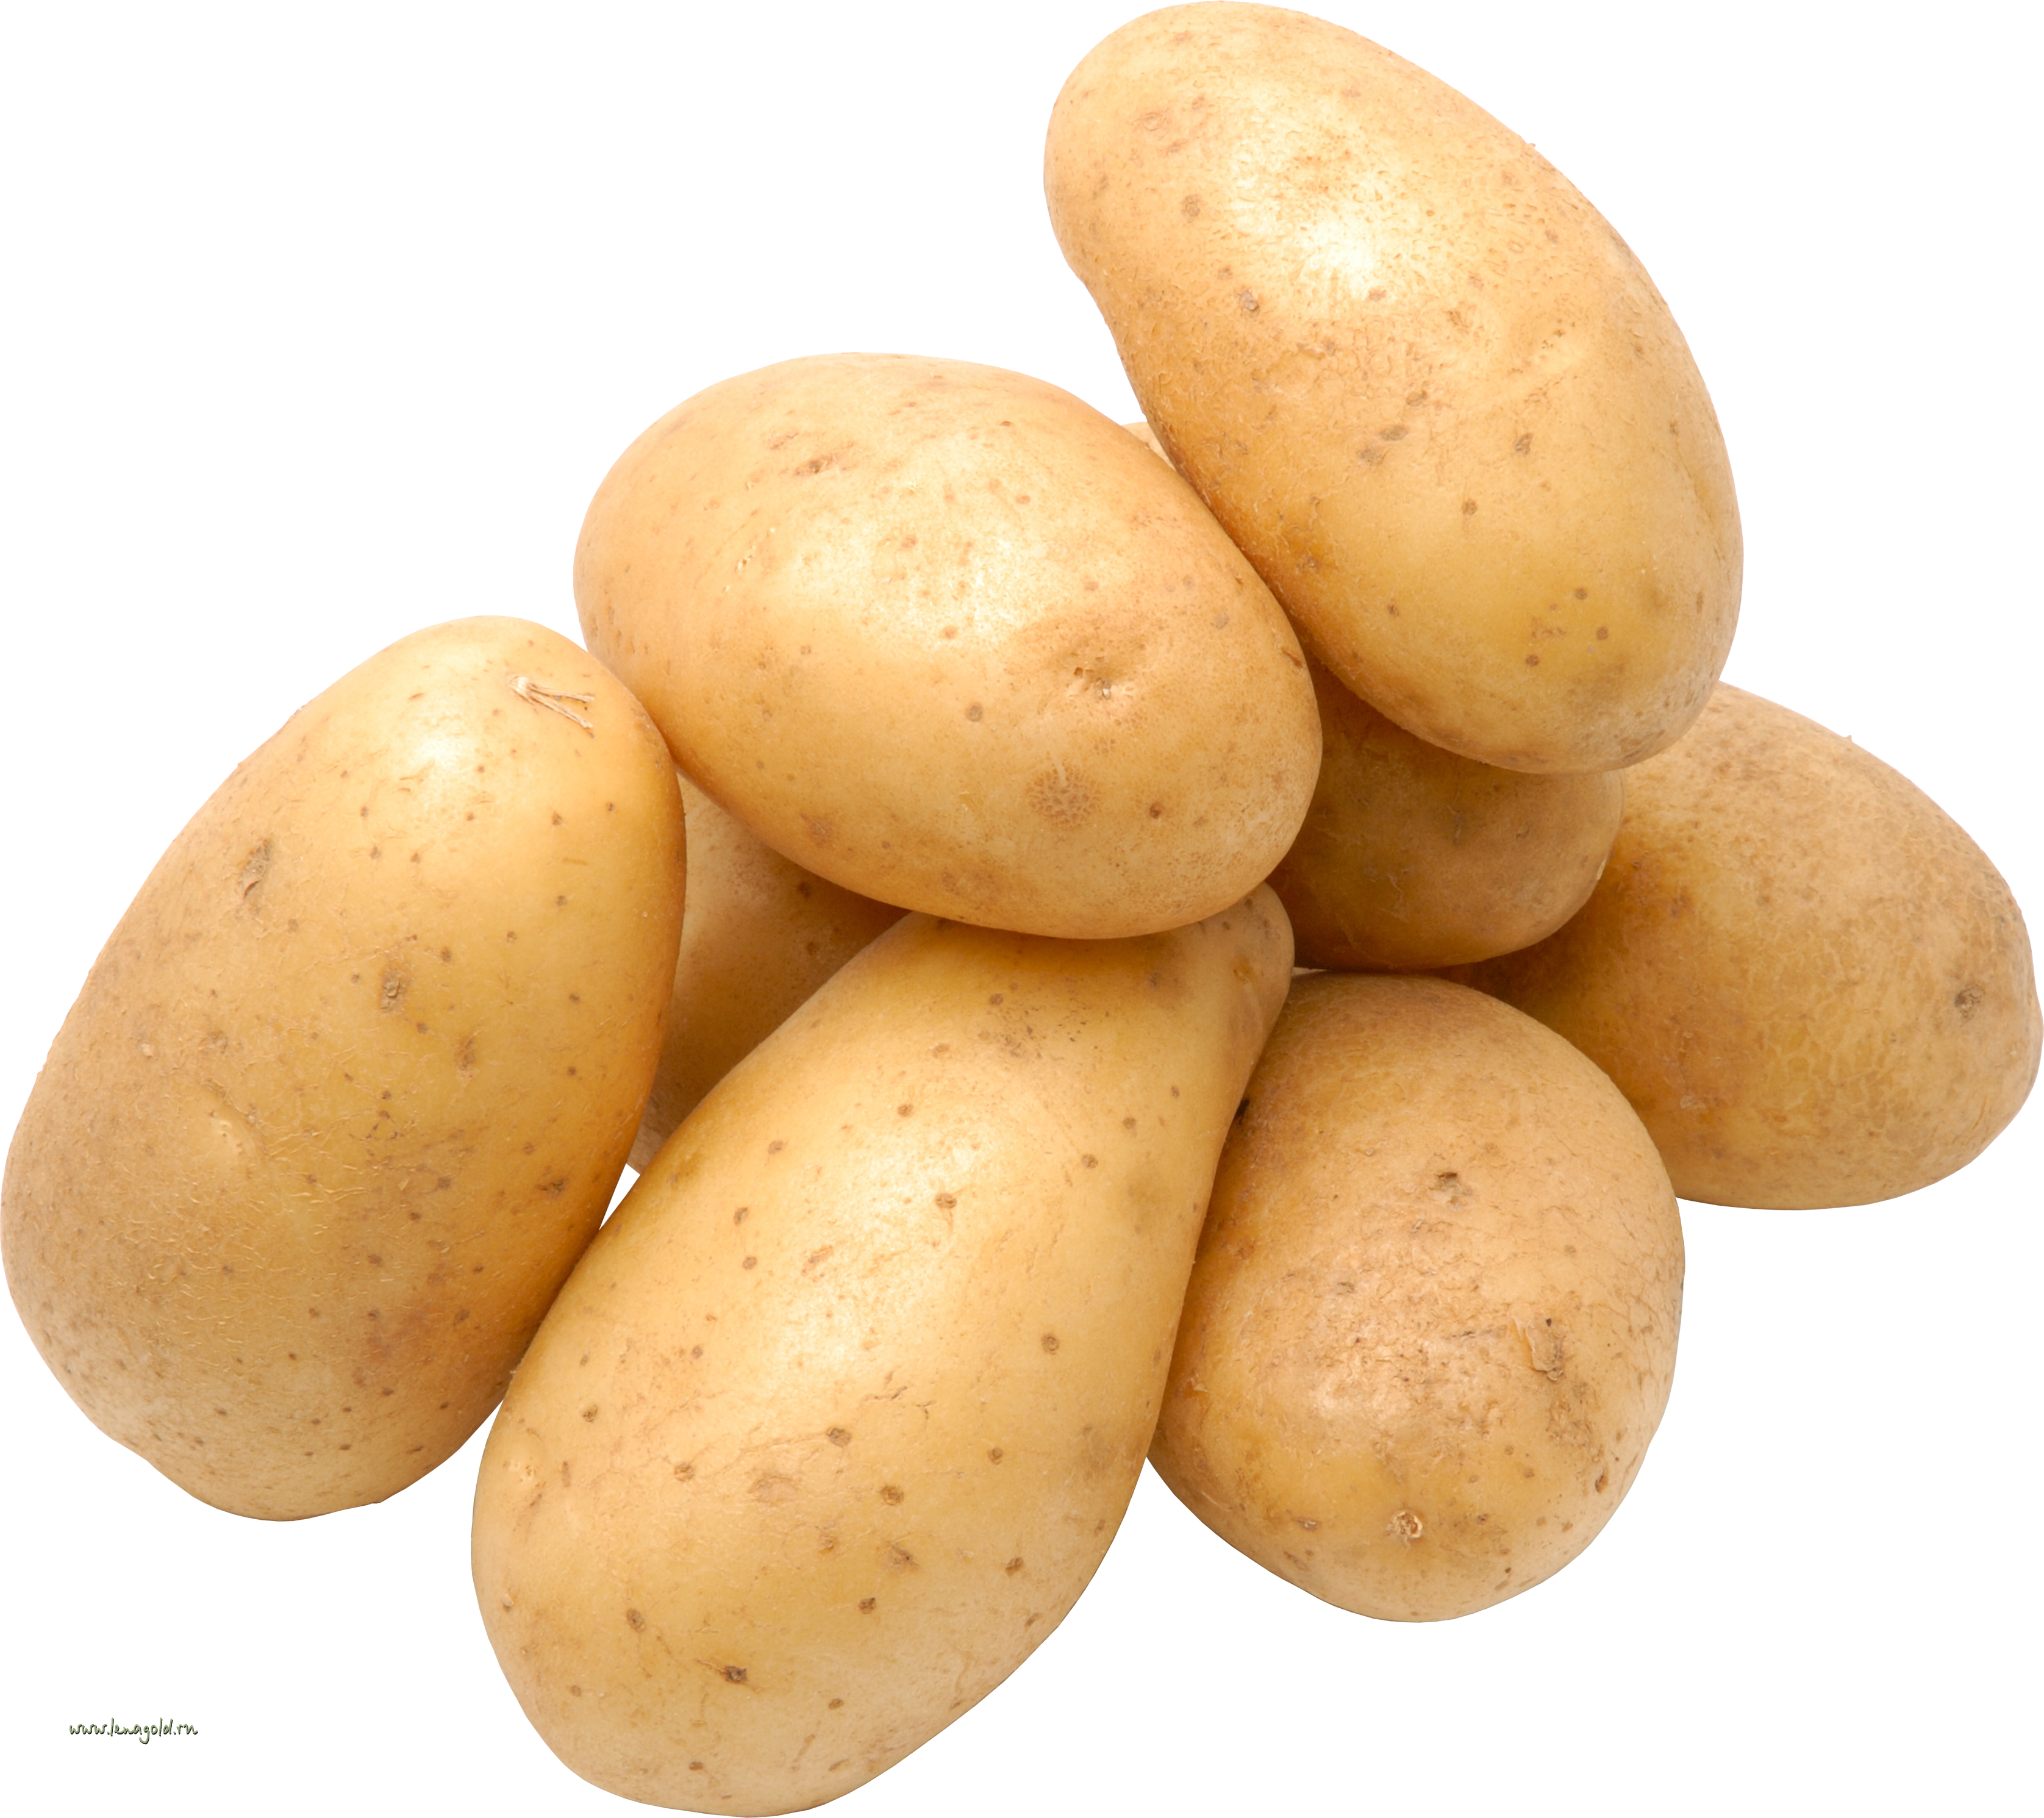 Png image purepng free. Potato clipart high resolution